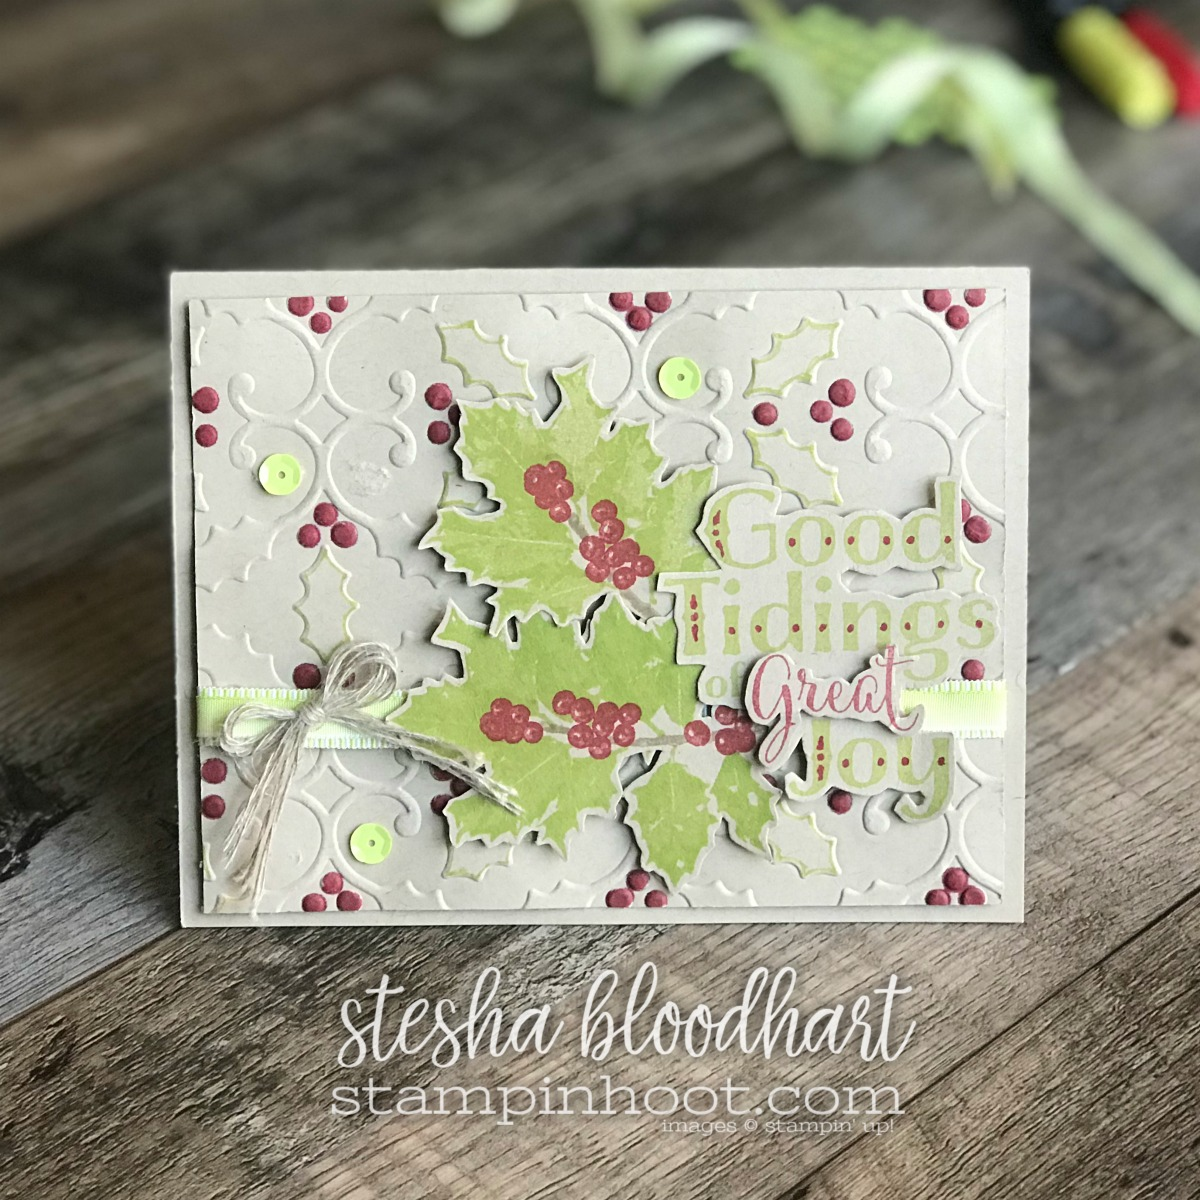 Good Tidings Stamp Set By Stampin' Up! Retiring January 2, 2018 from the 2017 Holiday Catalog, Created by Stesha Bloodhart for #gdp117 #steshabloodhart #stampinhoot